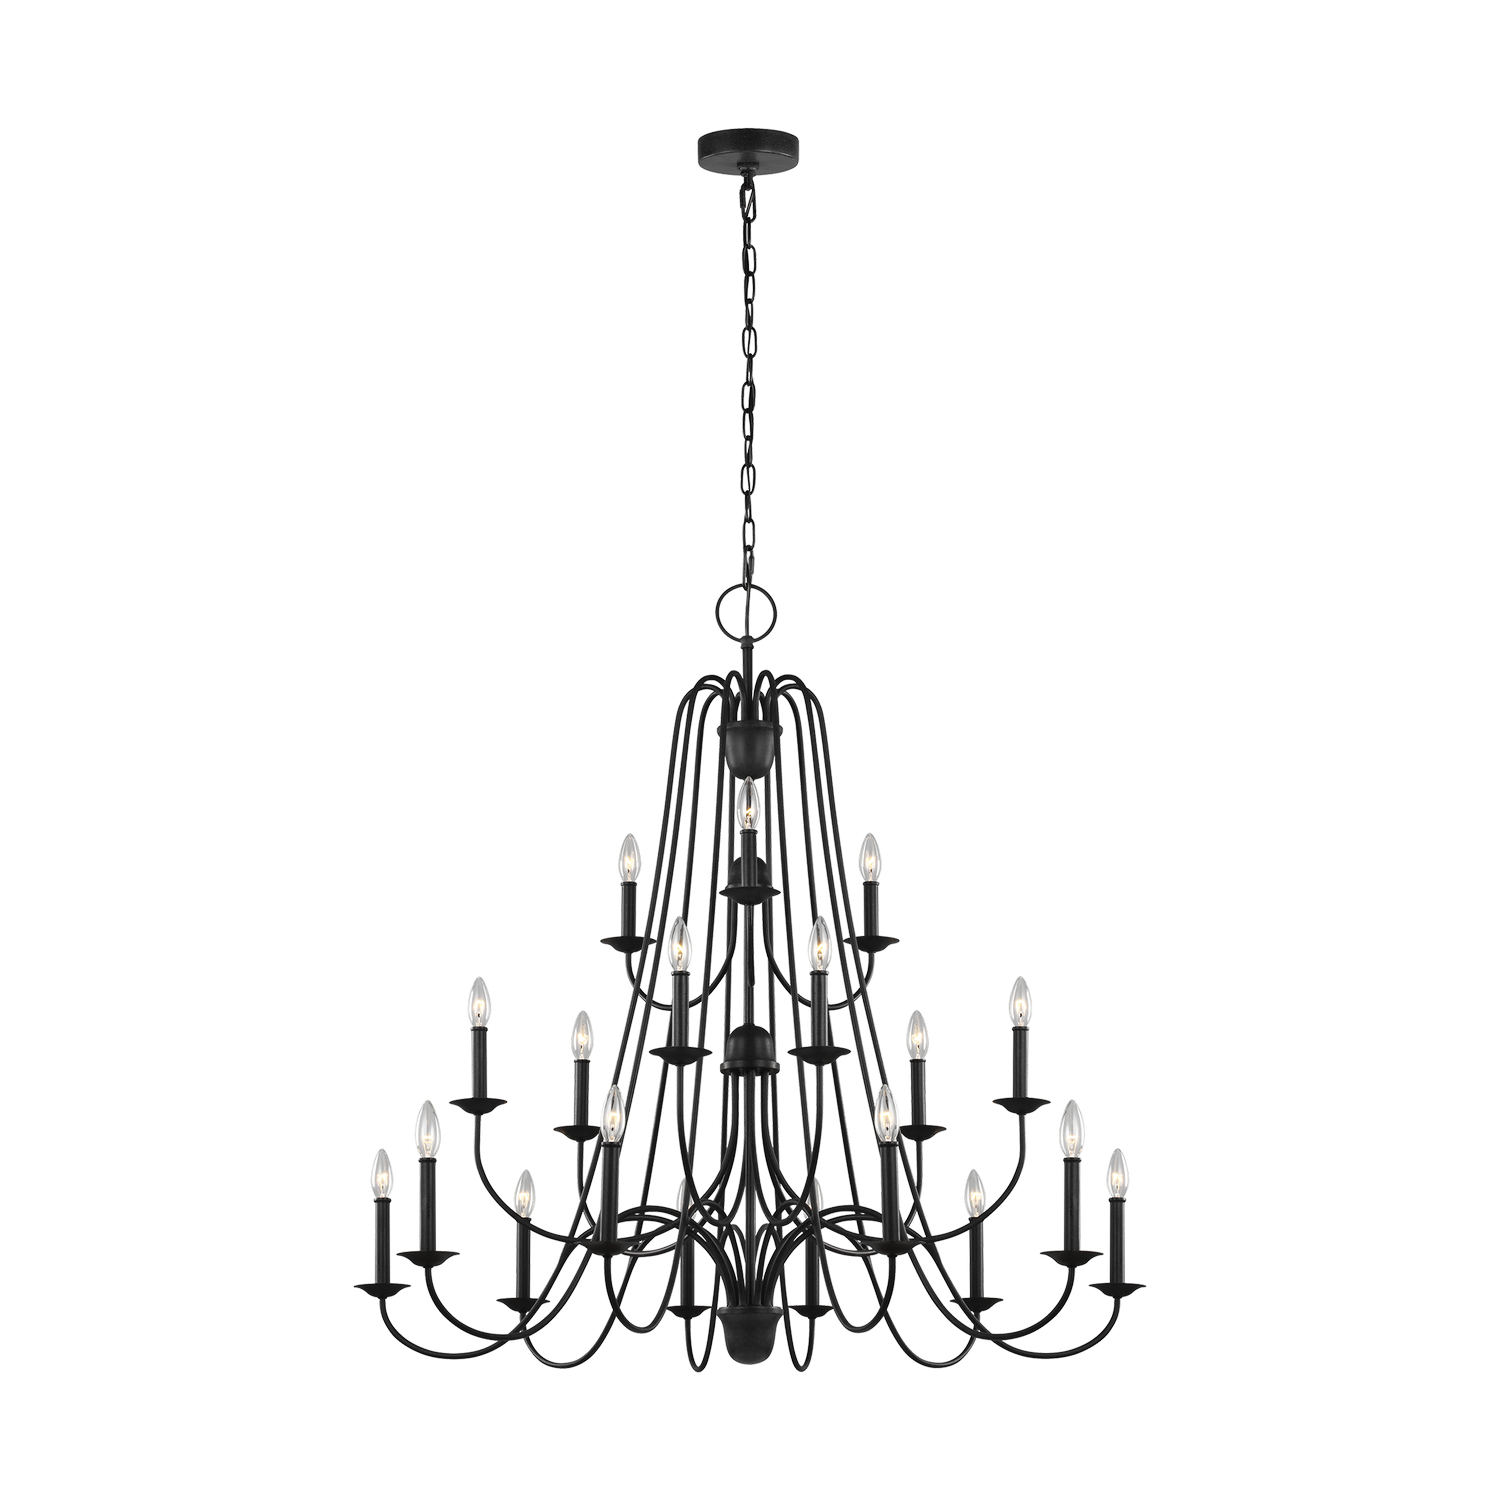 18 Light Chandelier from the Boughton collection by Seagull F320718AF